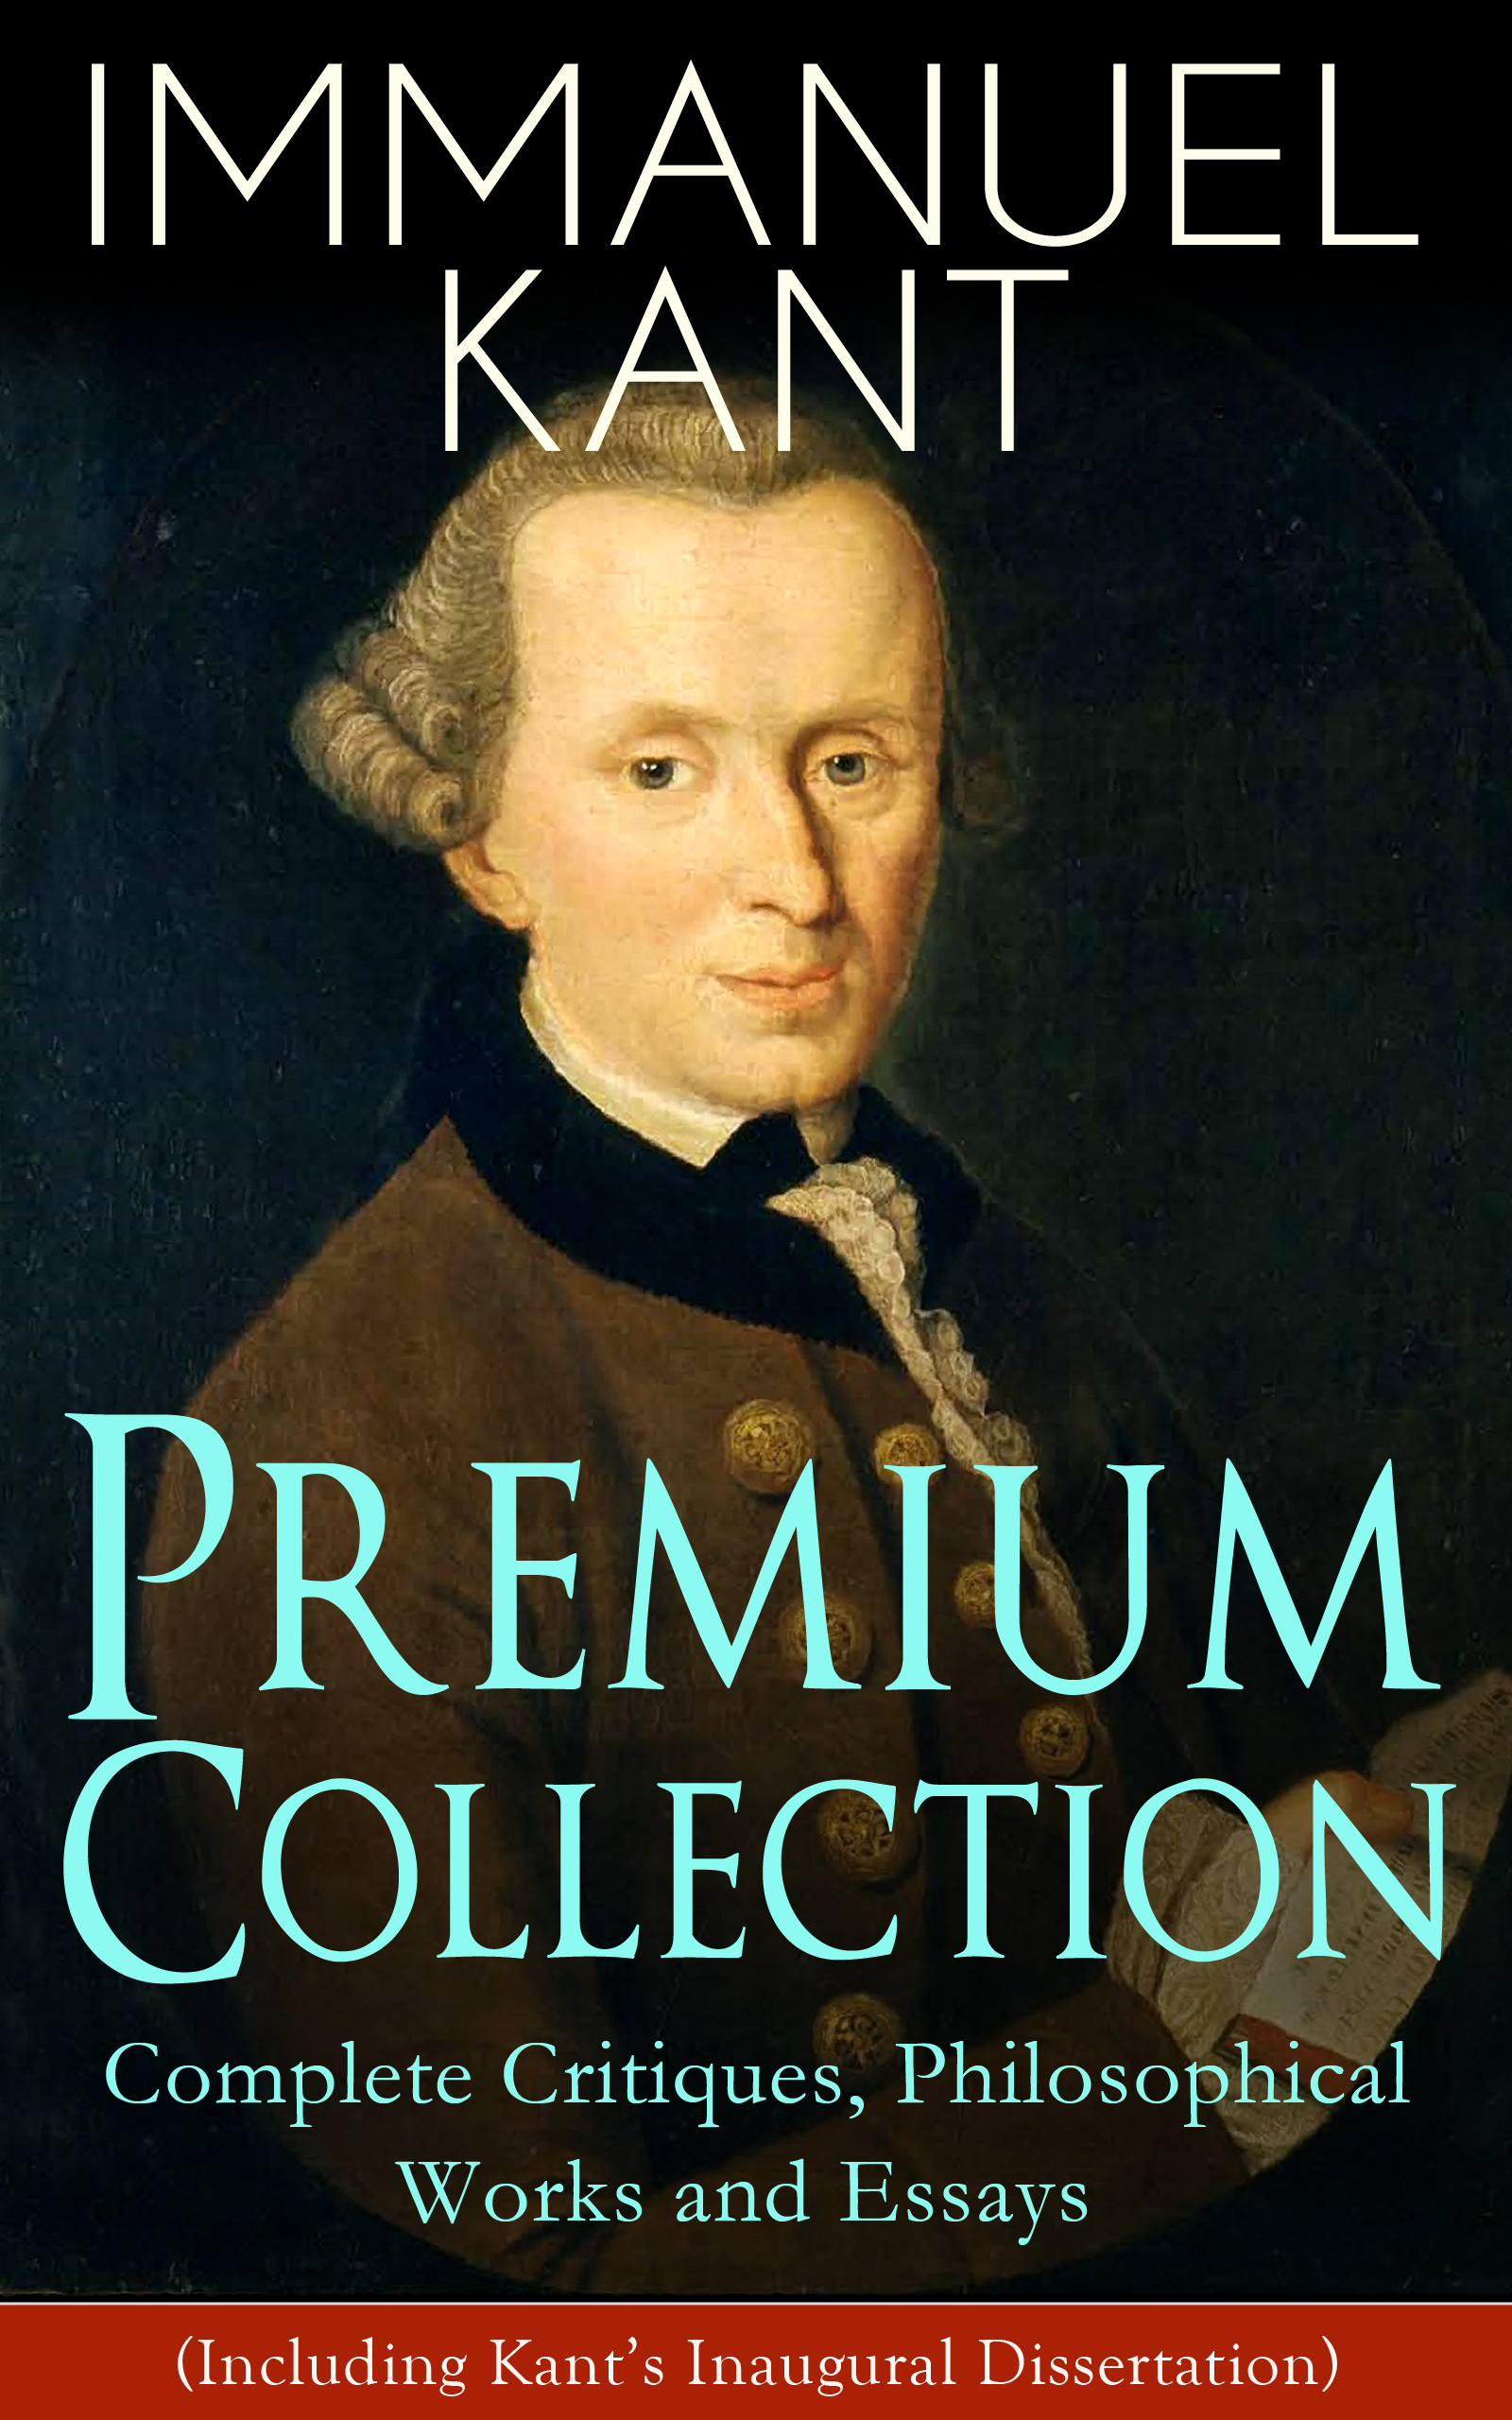 Immanuel Kant IMMANUEL KANT Premium Collection: Complete Critiques, Philosophical Works and Essays (Including Kant's Inaugural Dissertation)